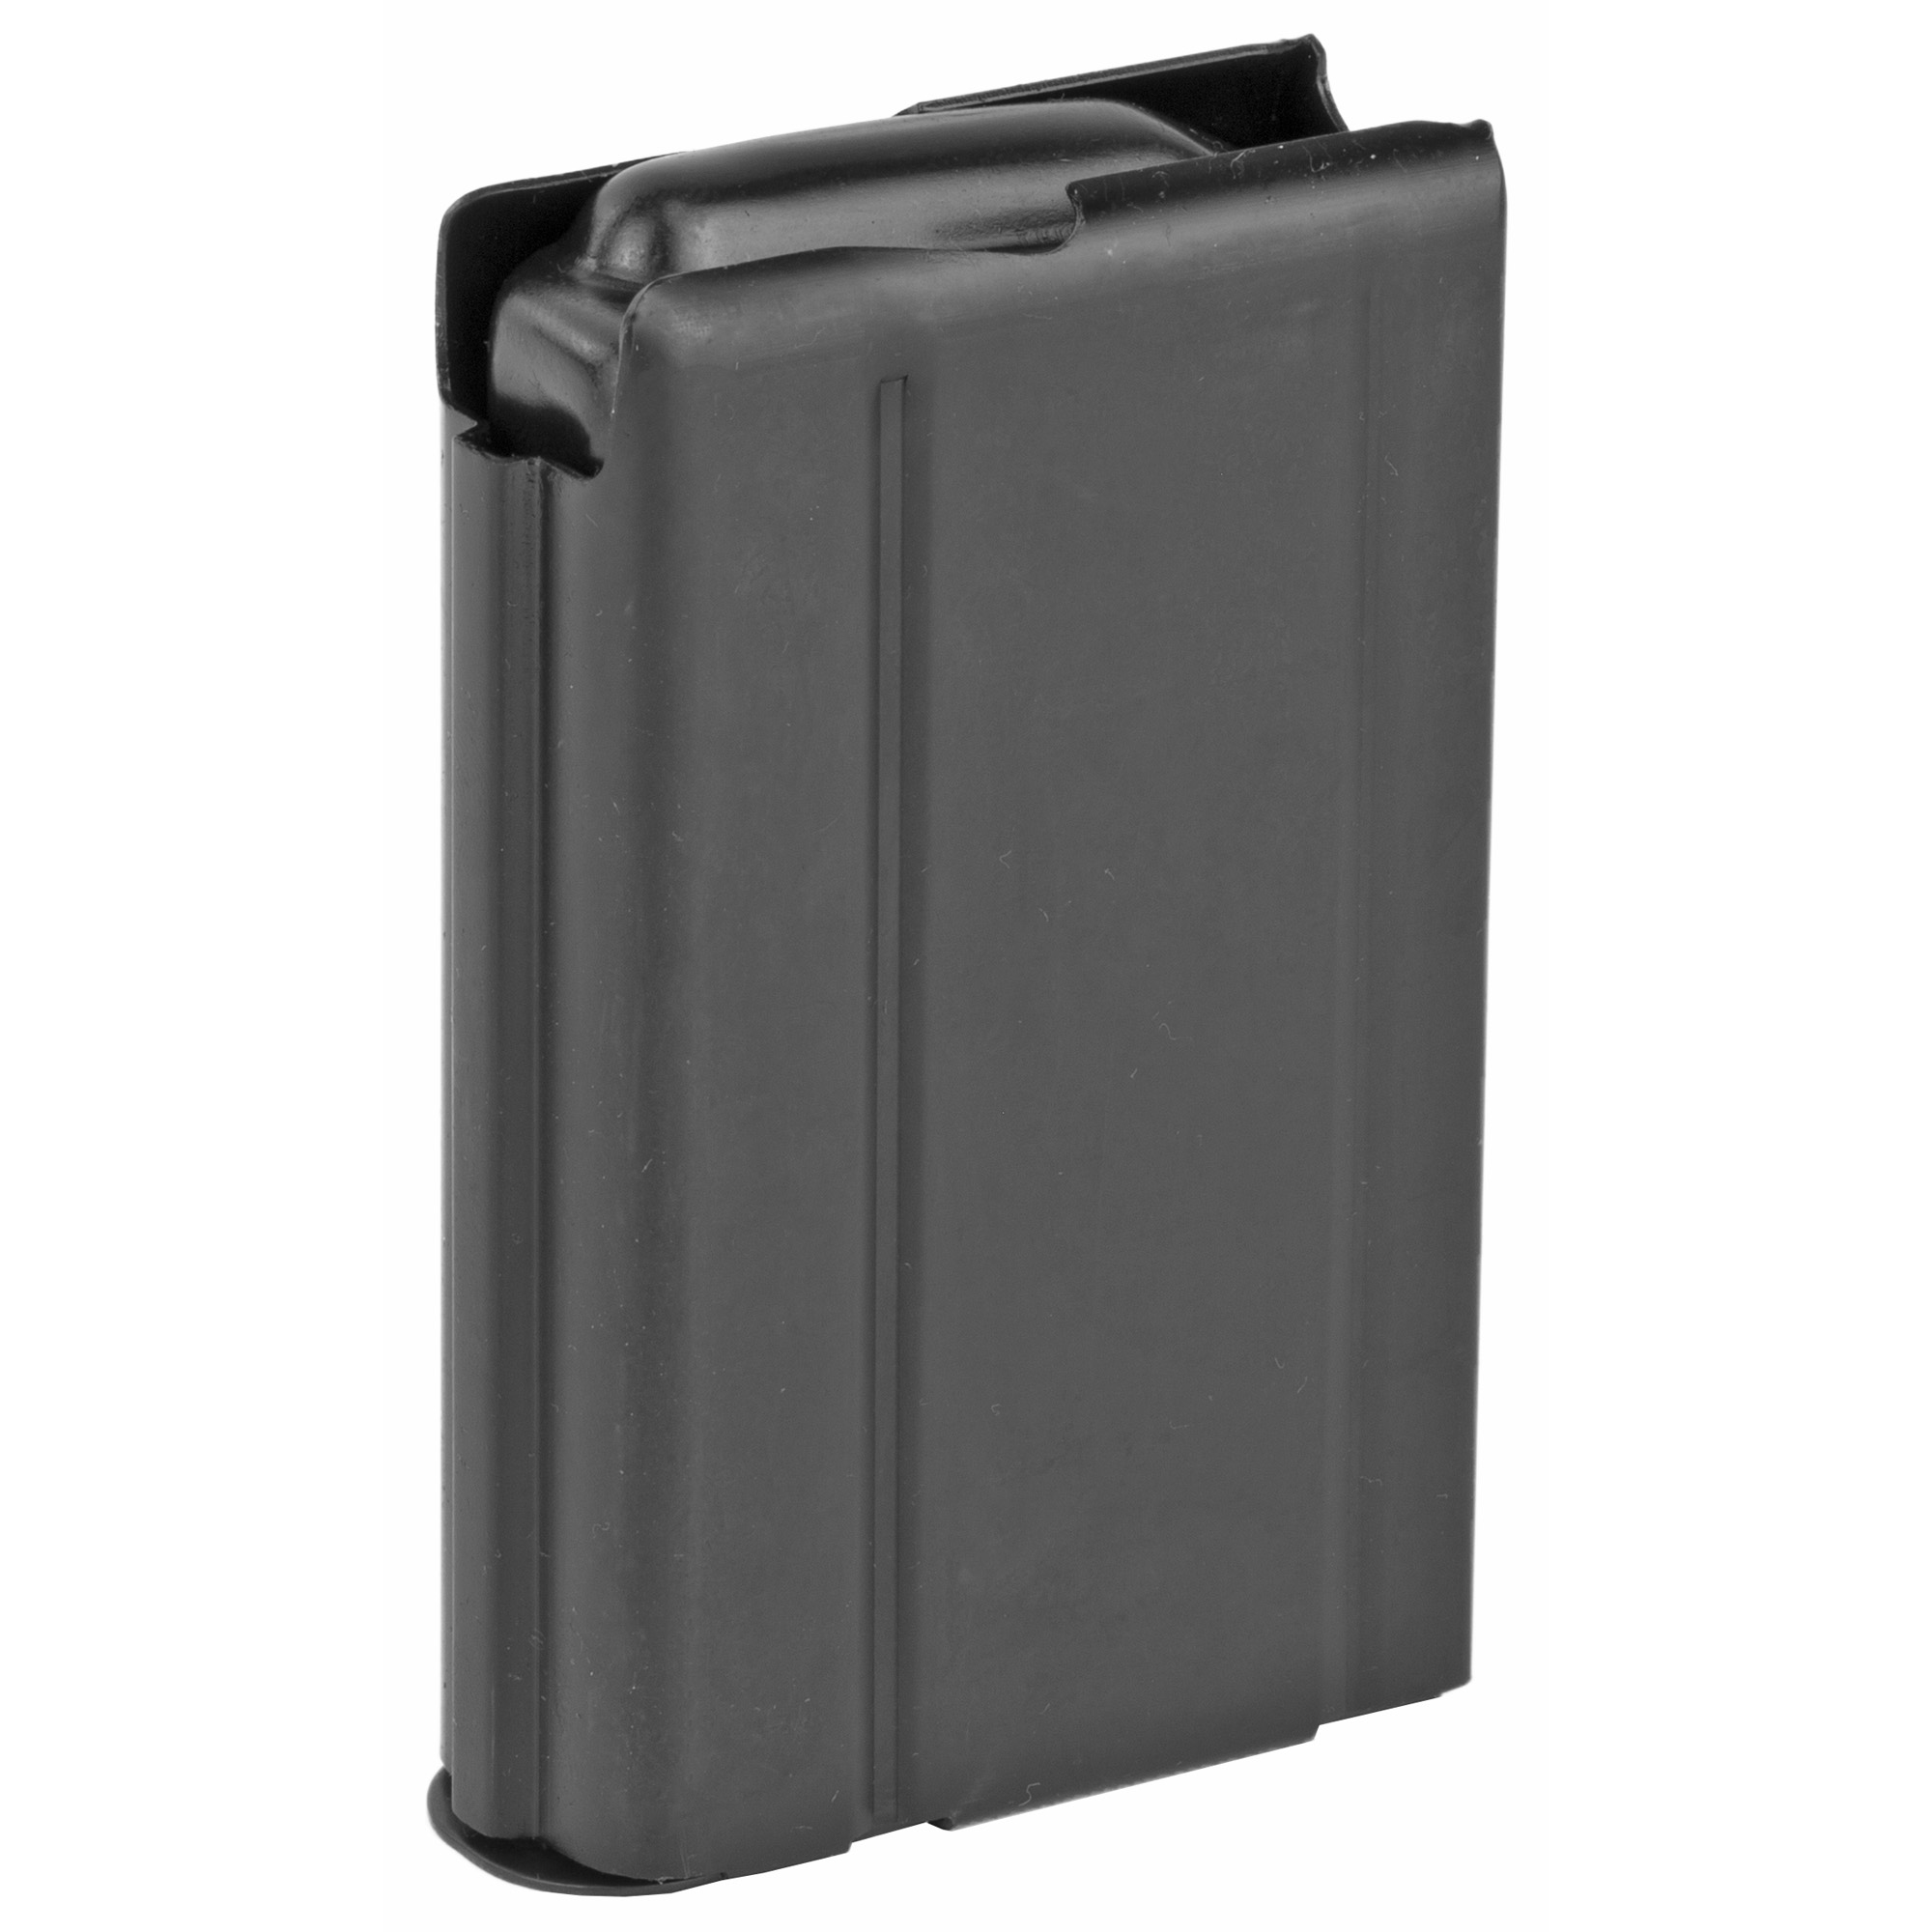 This Auto Ordnance M1 Carbine magazine is designed to hold 10 rounds of .30 Carbine ammunition and is made of steel.